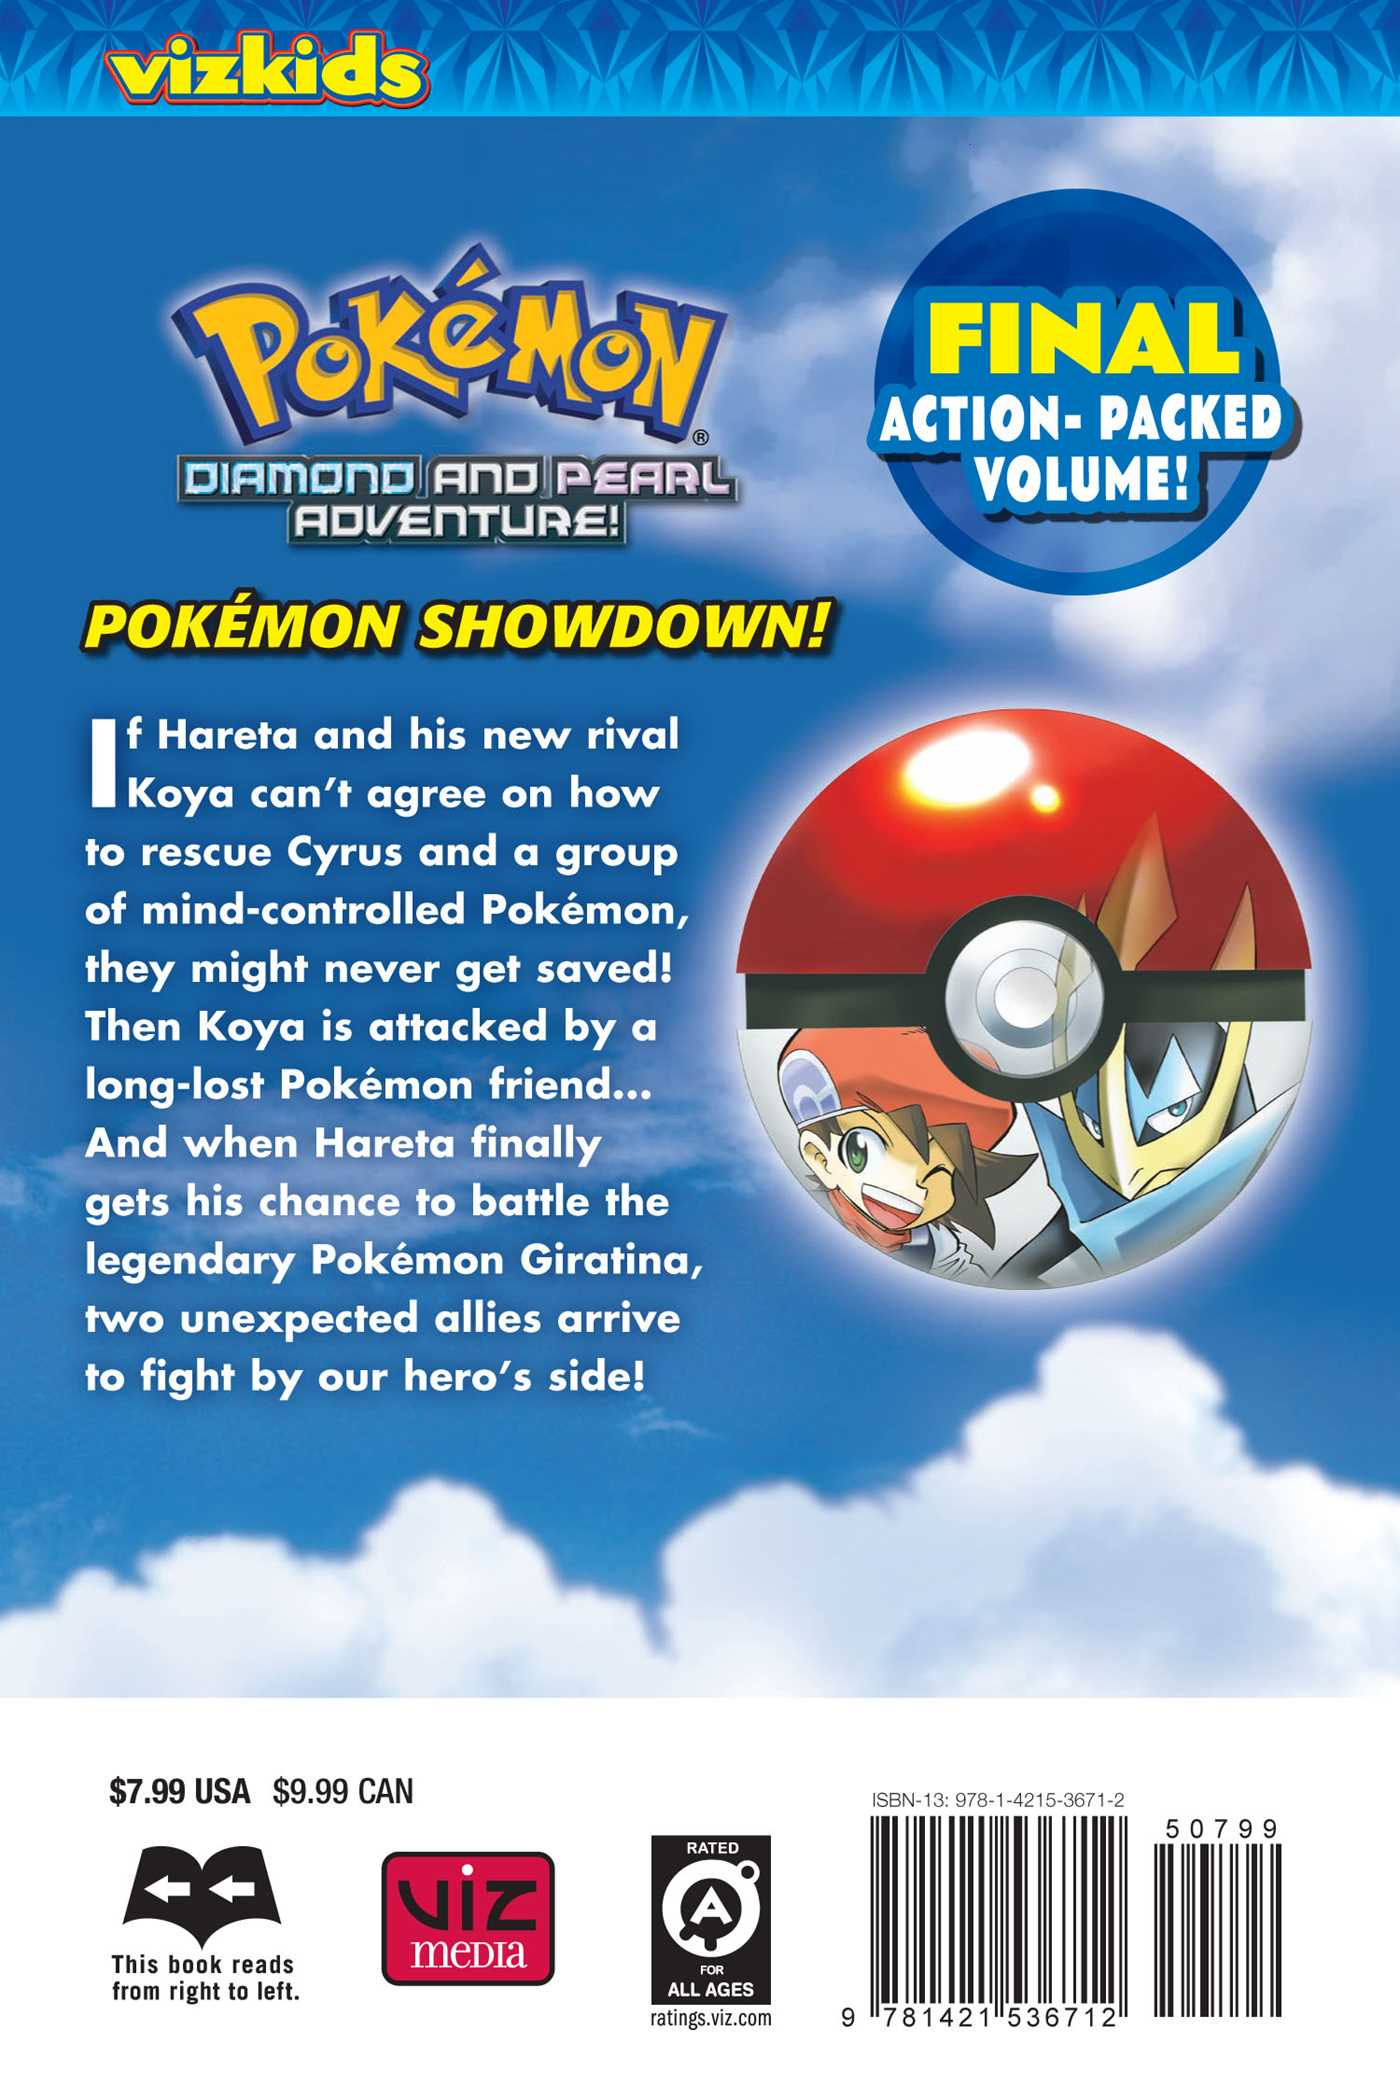 Pokemon-diamond-and-pearl-adventure-vol-8-9781421536712_hr-back